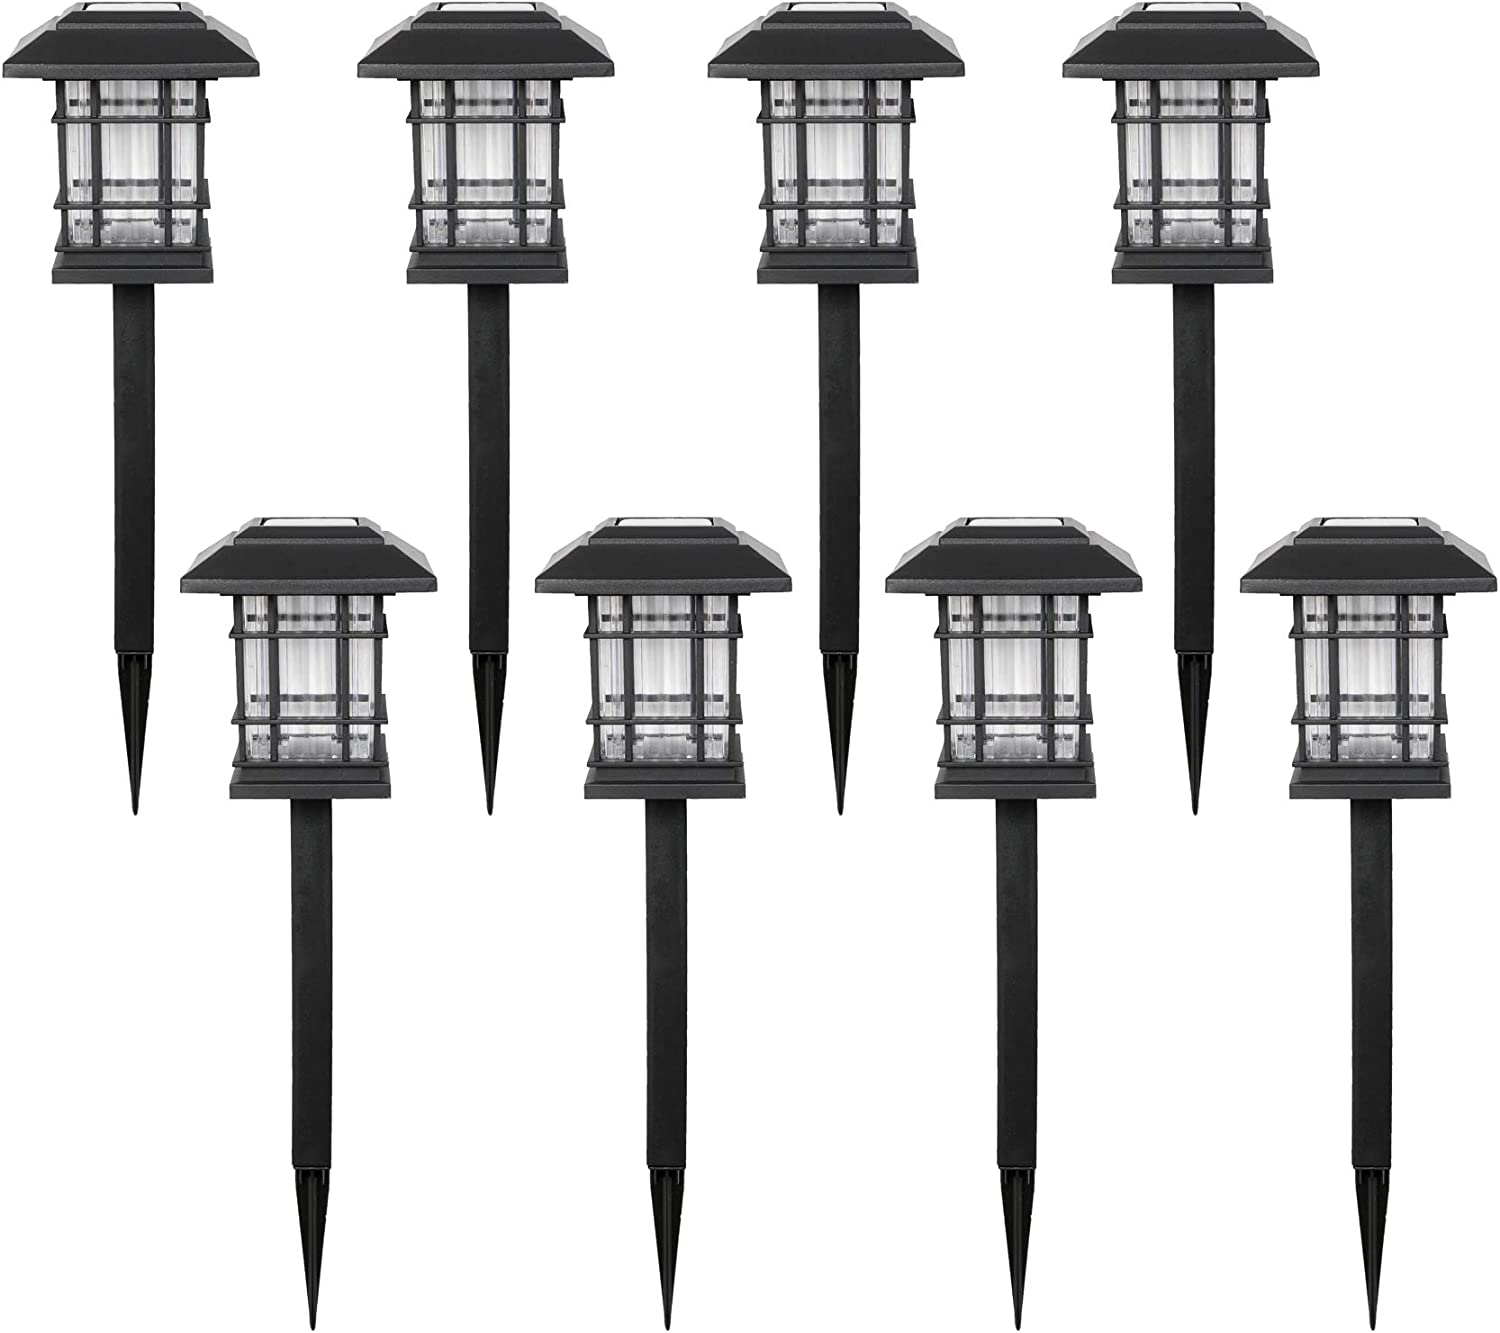 UNNYLLY Solar Pathway Lights Landscape Lights Outdoor Bright Warm Yellow Solar Powered LED Garden Lights for Lawn, Patio, Yard,8Pack